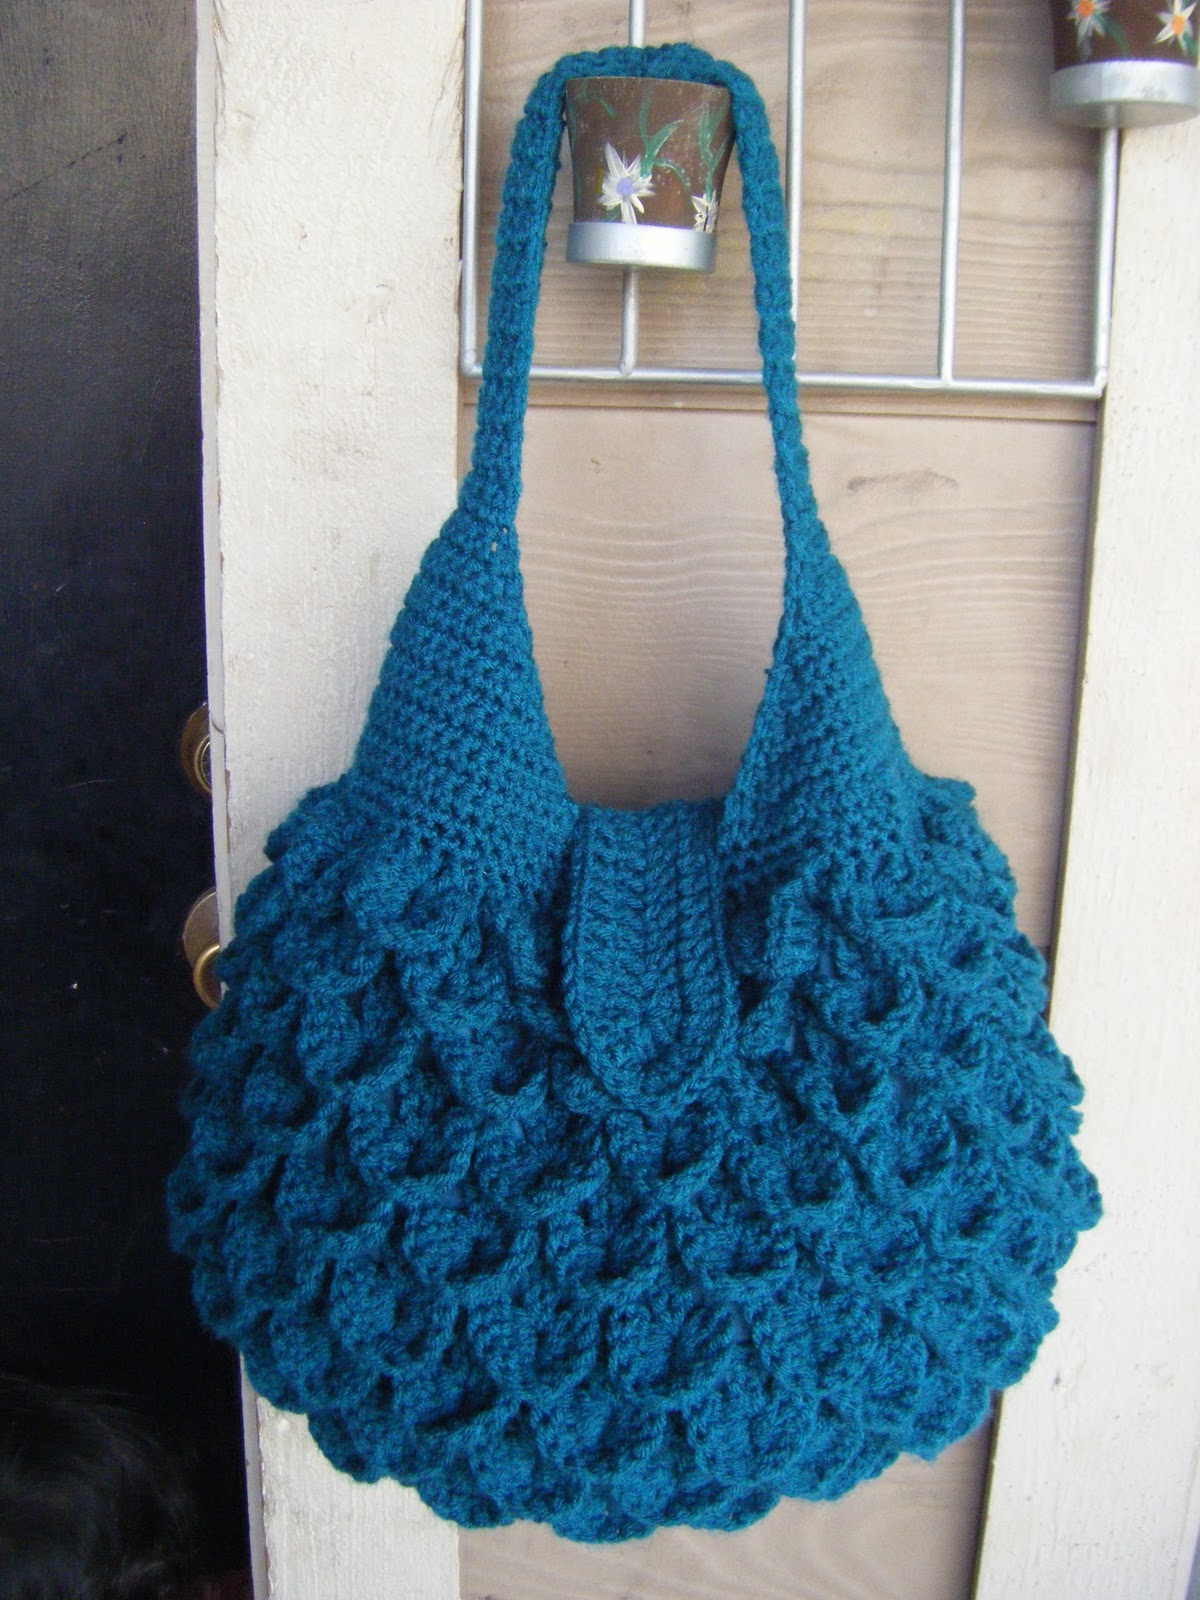 FREE THREAD CROCHET PURSE PATTERNS - Easy Crochet Patterns